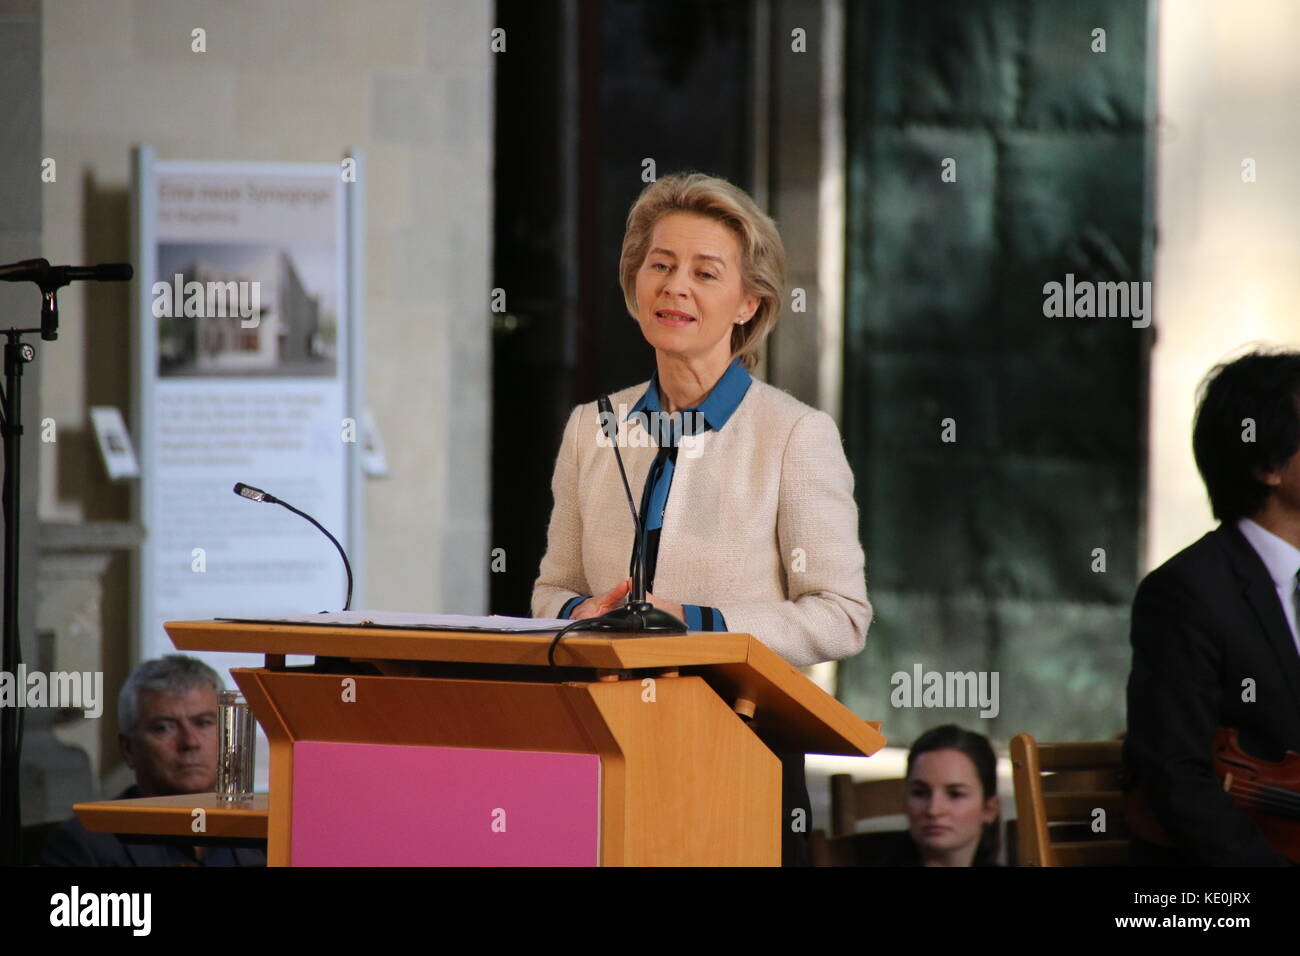 Magdeburg, Germany. 17th Oct, 2017. The Federal Minister of Defense, Dr. Ursula von der Leyen, is speaking at the - Stock Image